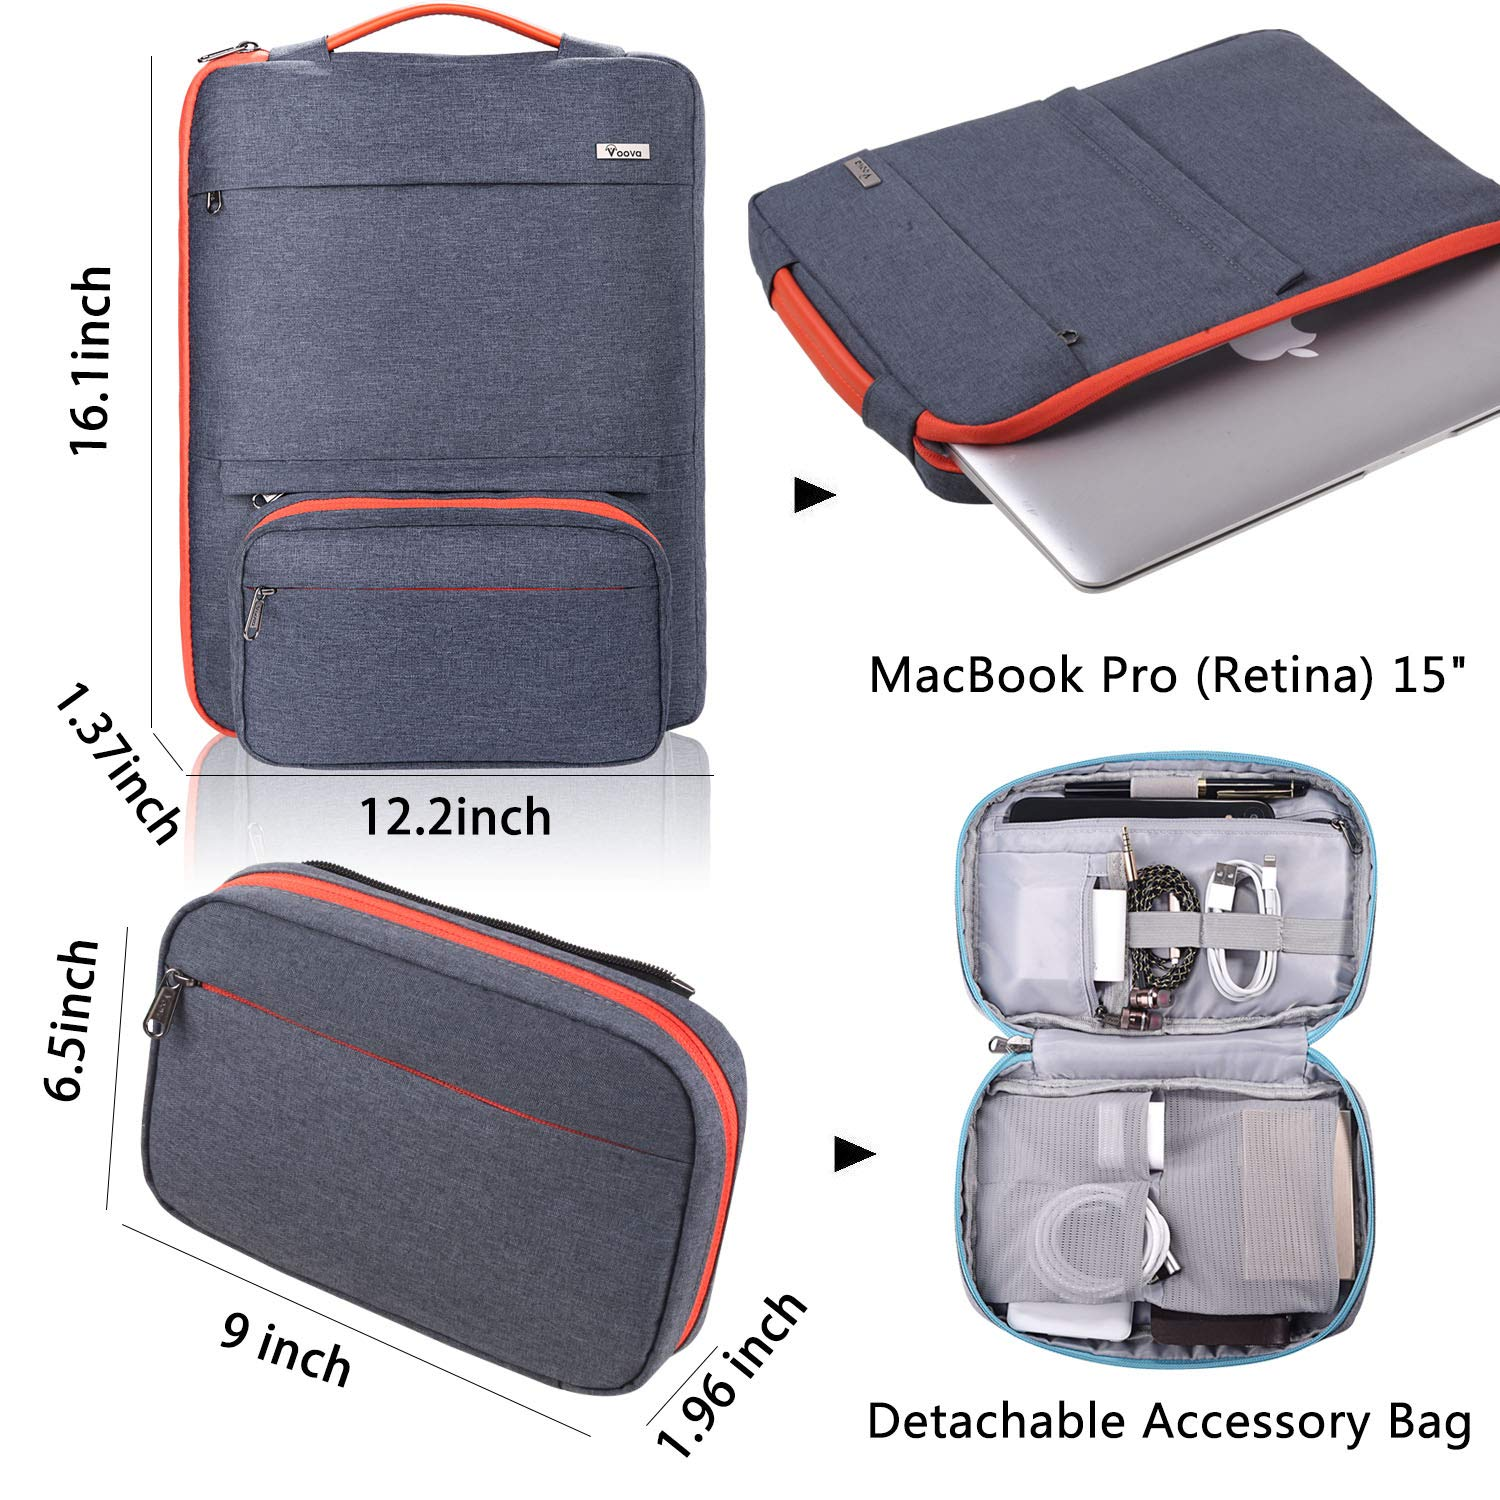 Voova 14-15.6 Inch Laptop Sleeve Bag Cover Special Design Waterproof Computer Protective Carry Case with Detachable Accessory Pocket Compatible with MacBook Pro Retina 15'', HP, Asus, Acer, Dark Gray by  Voova (Image #2)